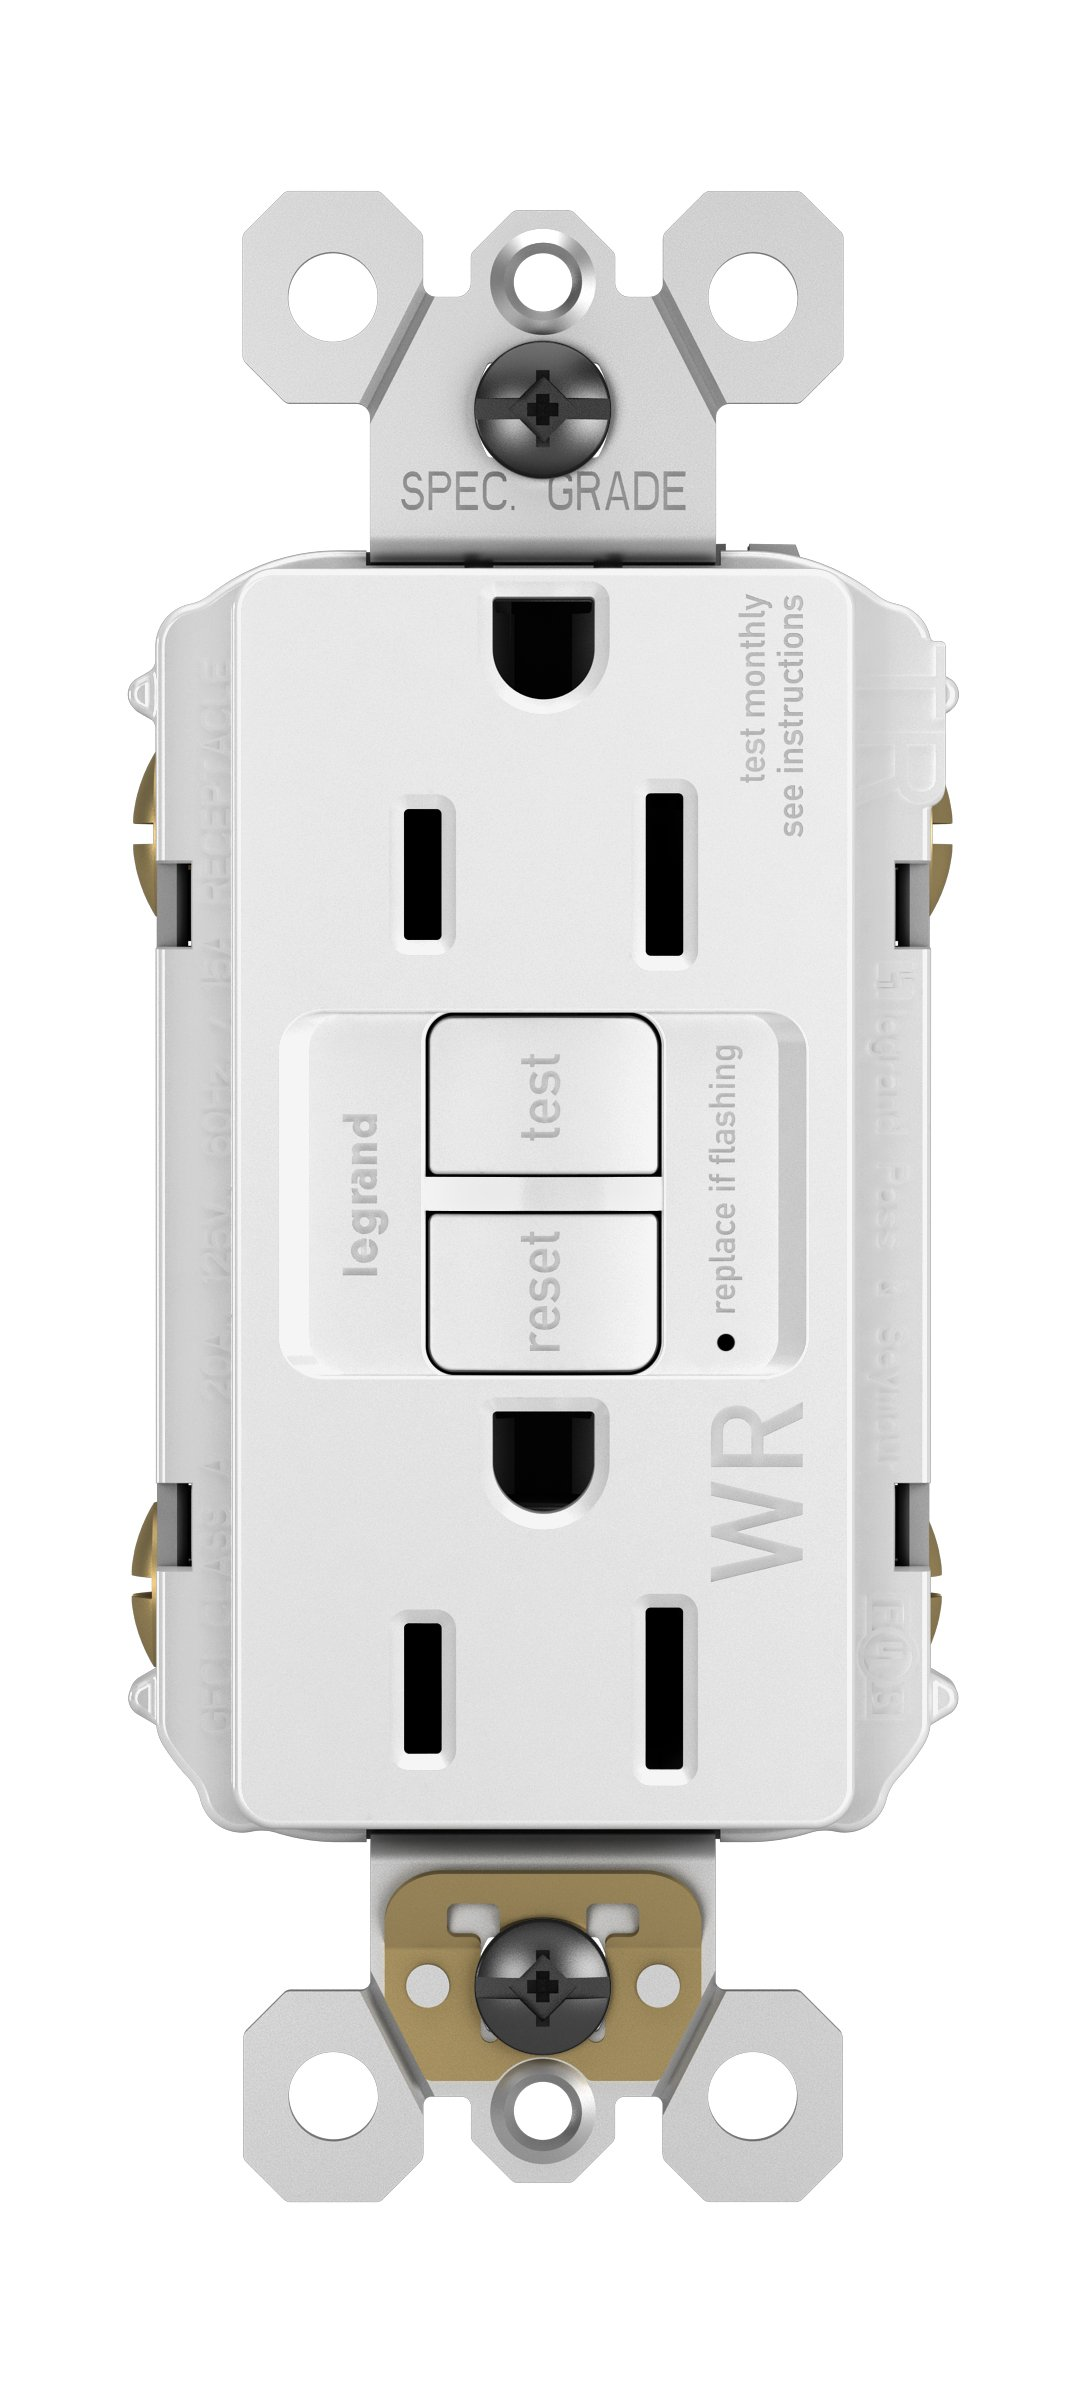 Legrand-Pass & Seymour 1597TRWRWCC4 Self-Test GFCI Receptacle Outlet with Wall Plate, 15Amp 125V, White